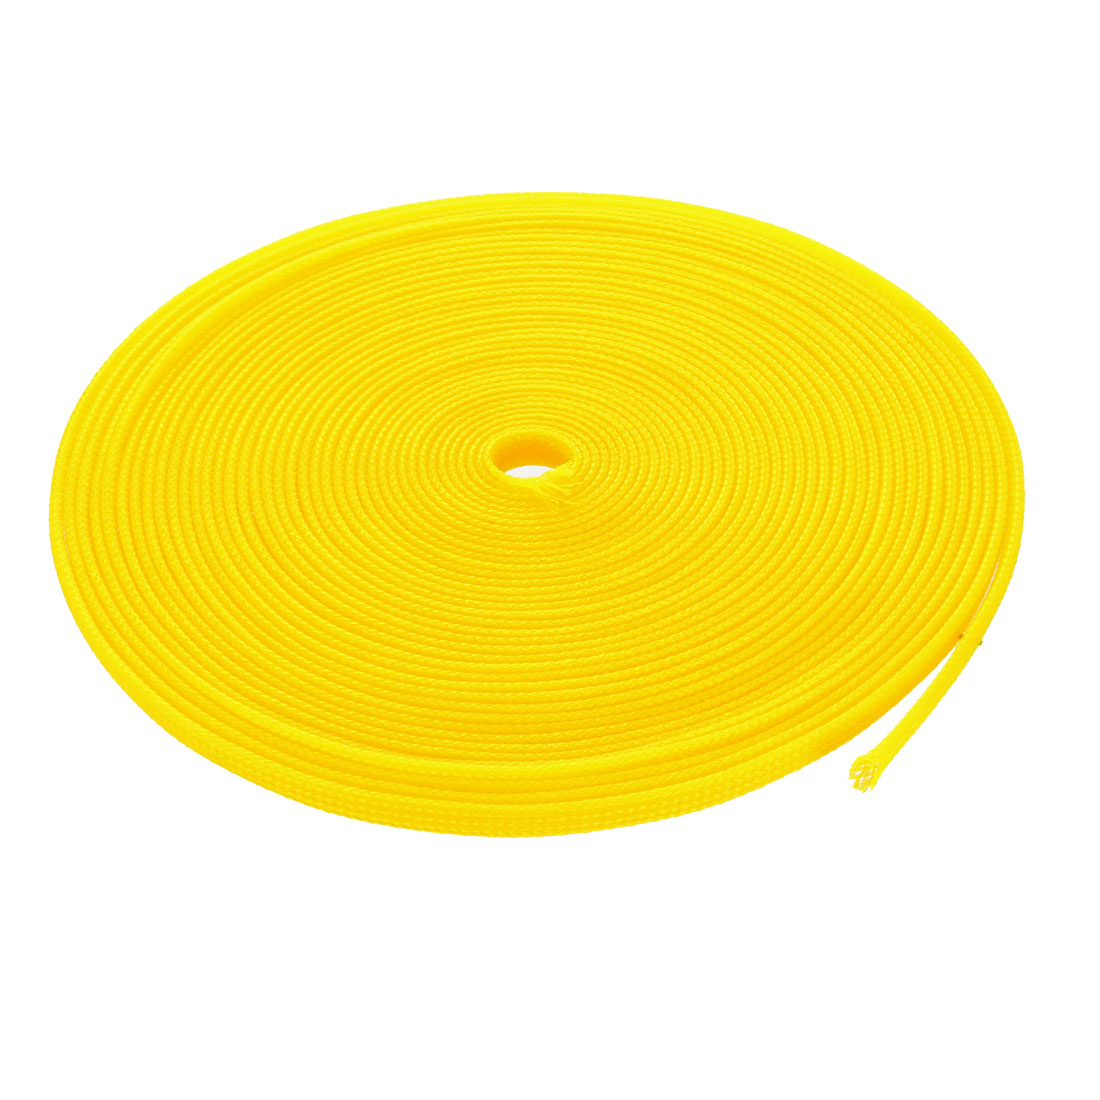 8mm Dia Tight Braided PET Expandable Sleeving Cable Wire Wrap Sheath Yellow 10M